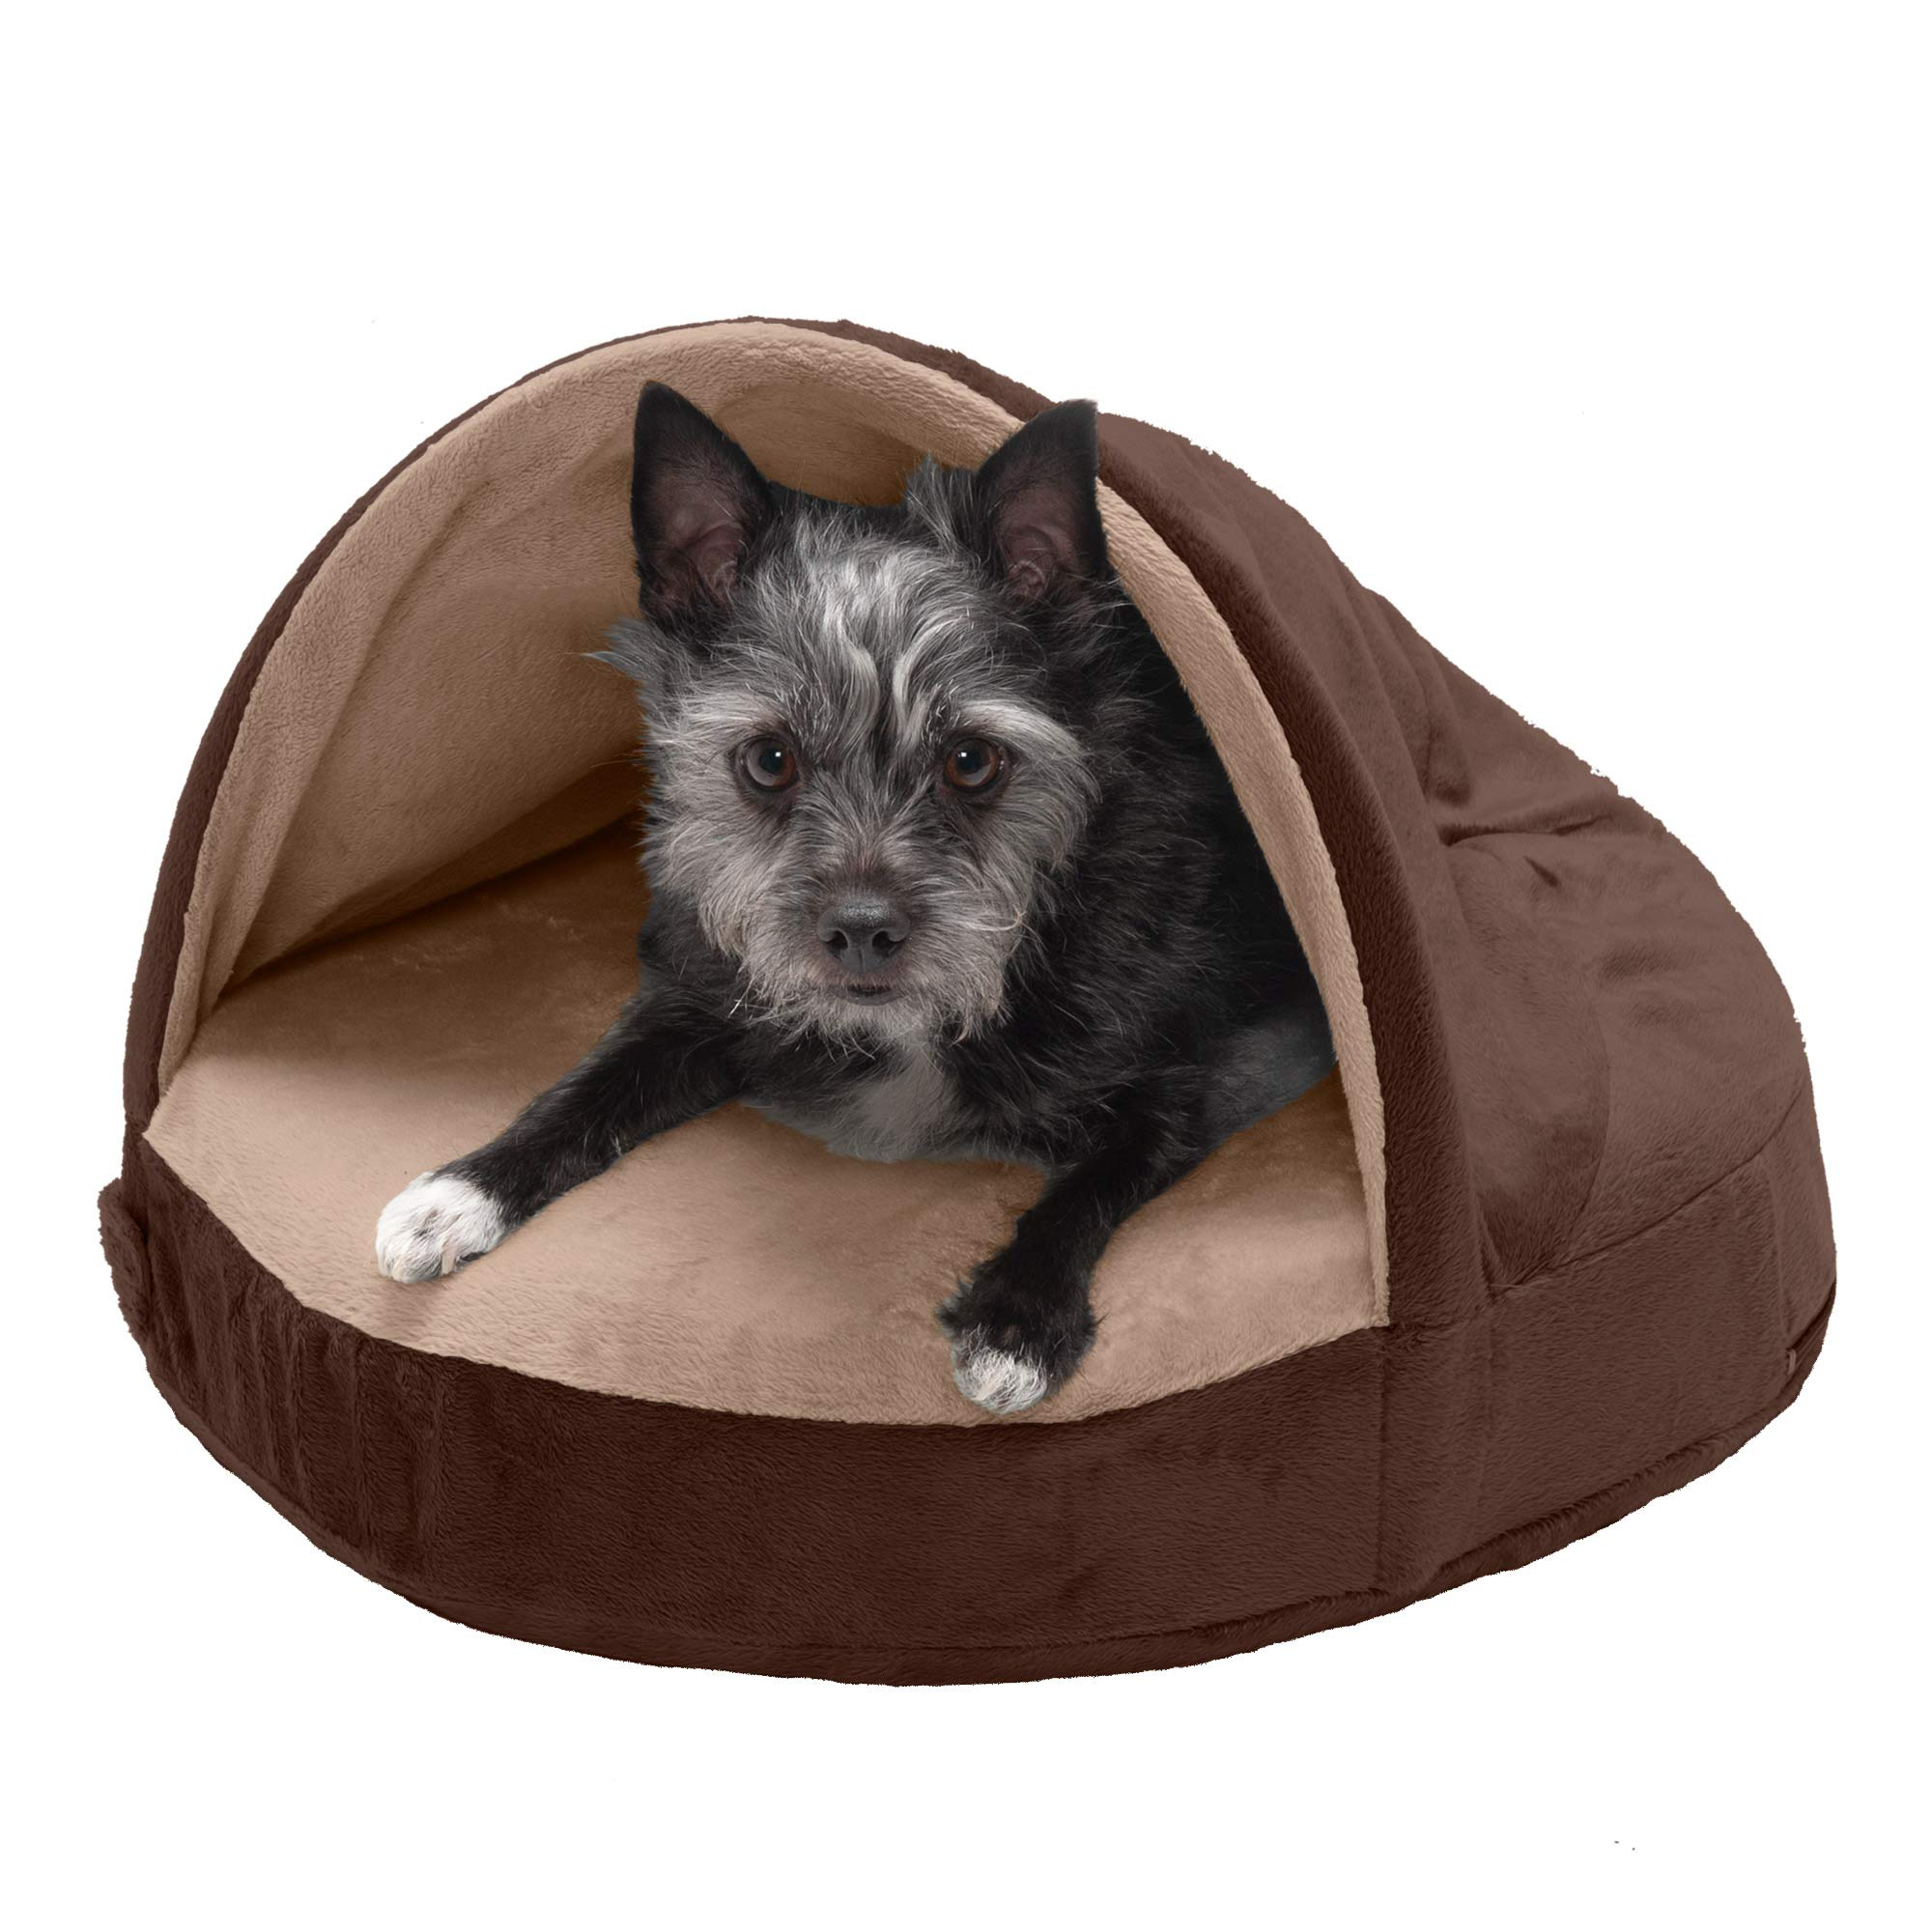 Furhaven Pet – Round Orthopedic Convertible Snuggery Burrowing Cave, Hooded Donut Bolster Bed, & Anti-Anxiety Wrap…